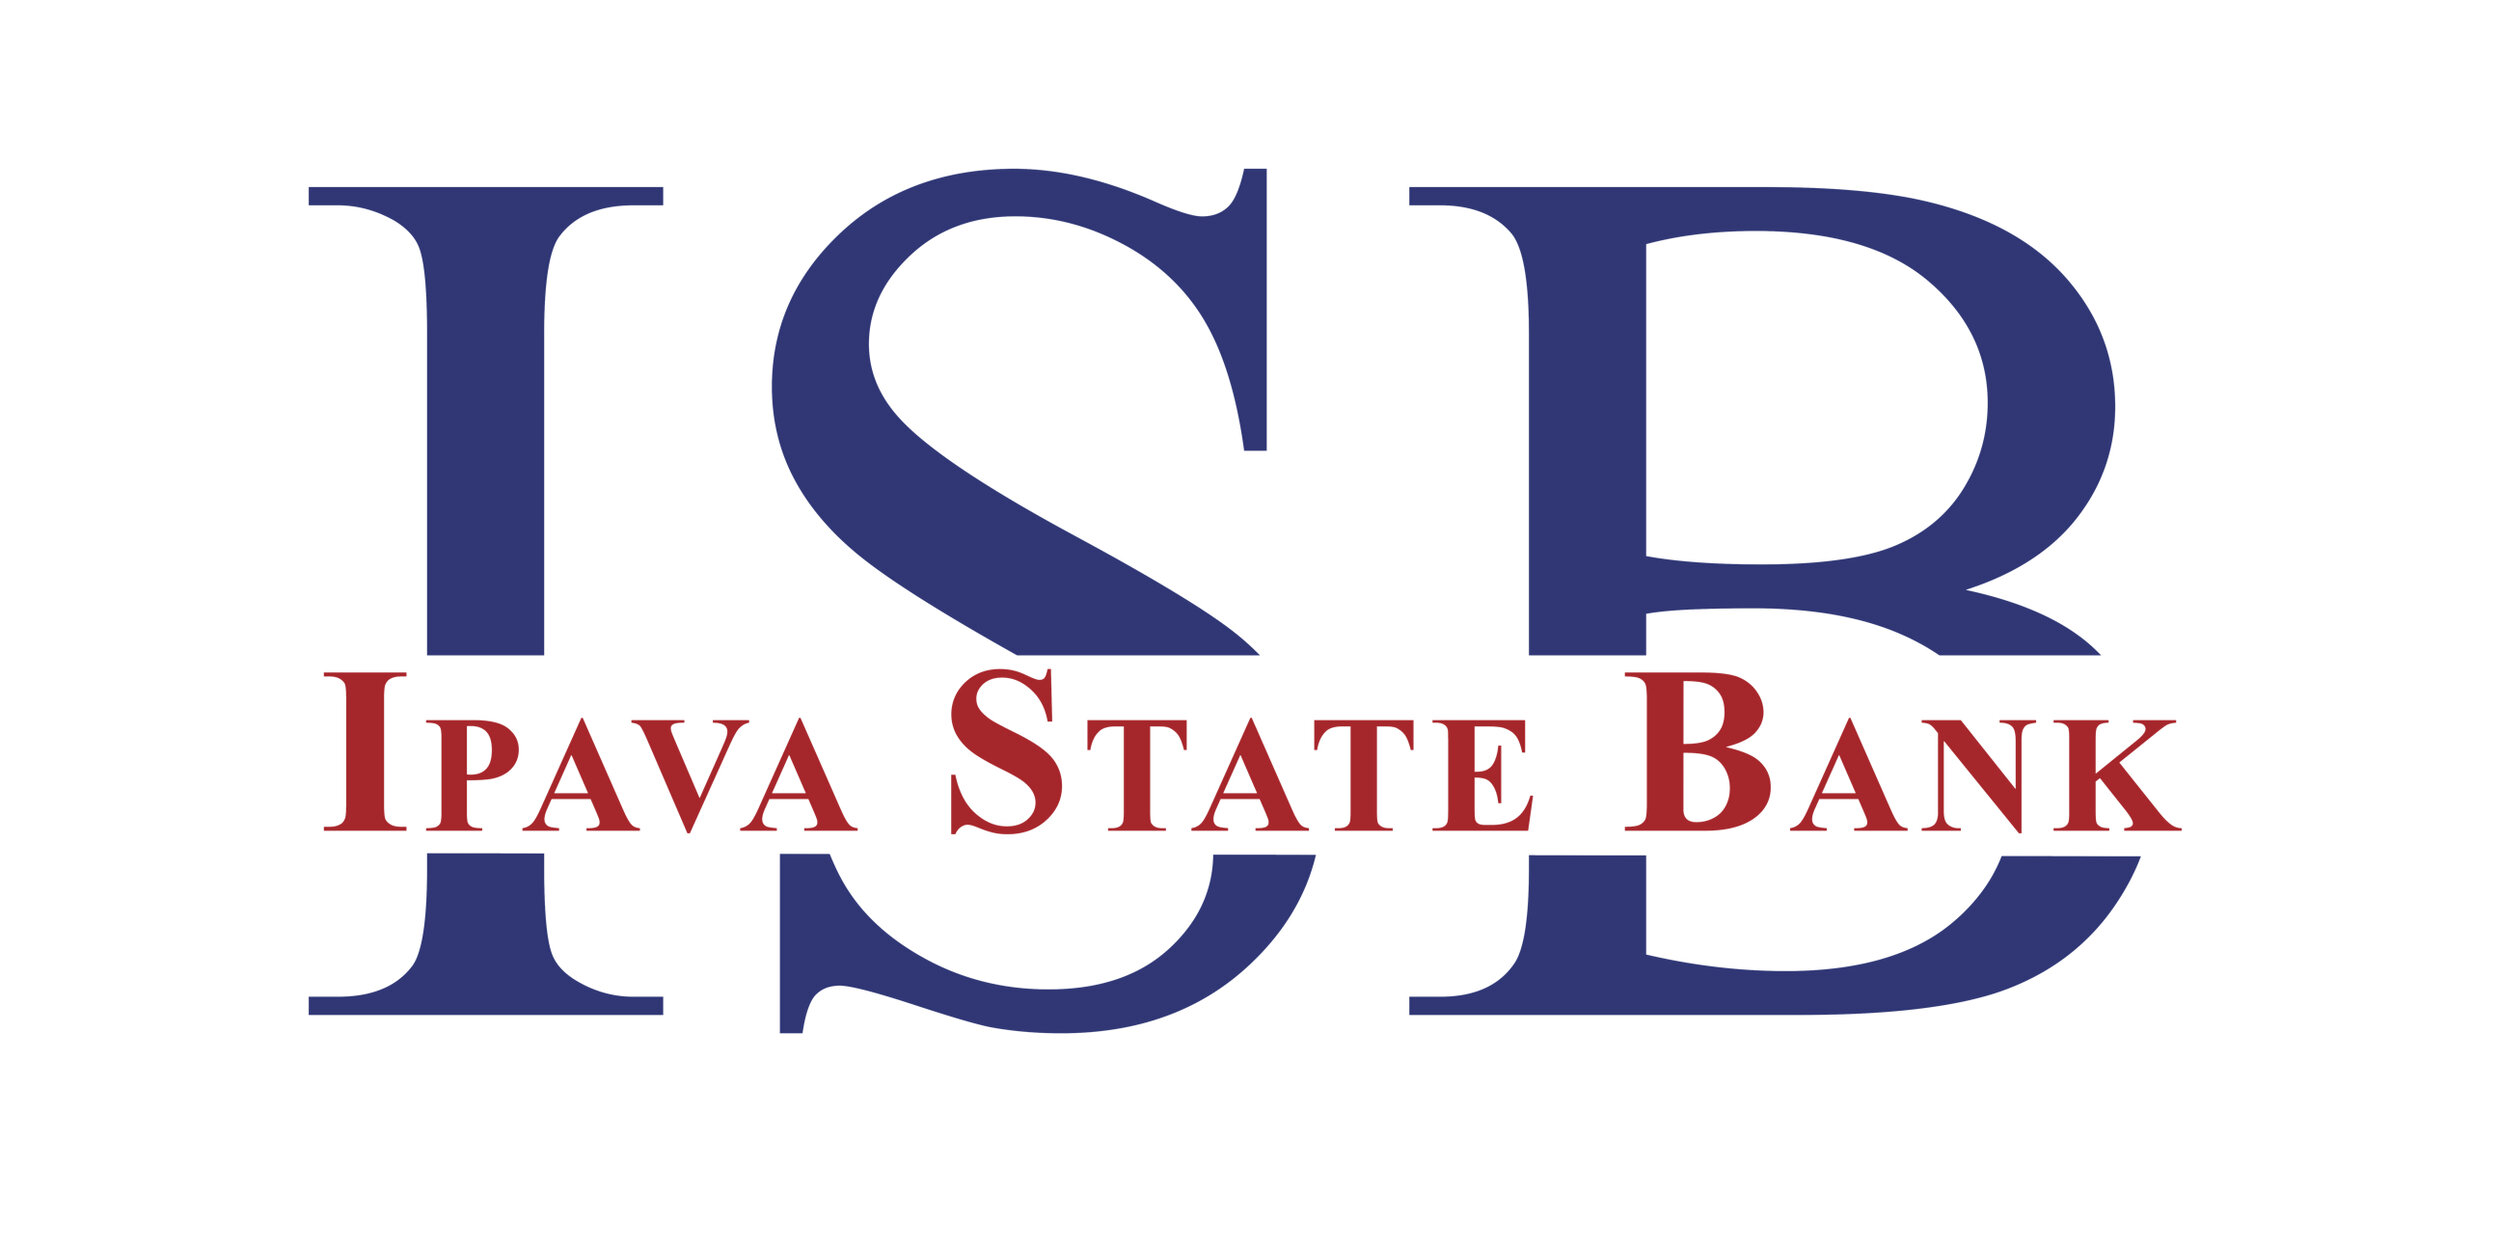 IPava State bank - Official Website